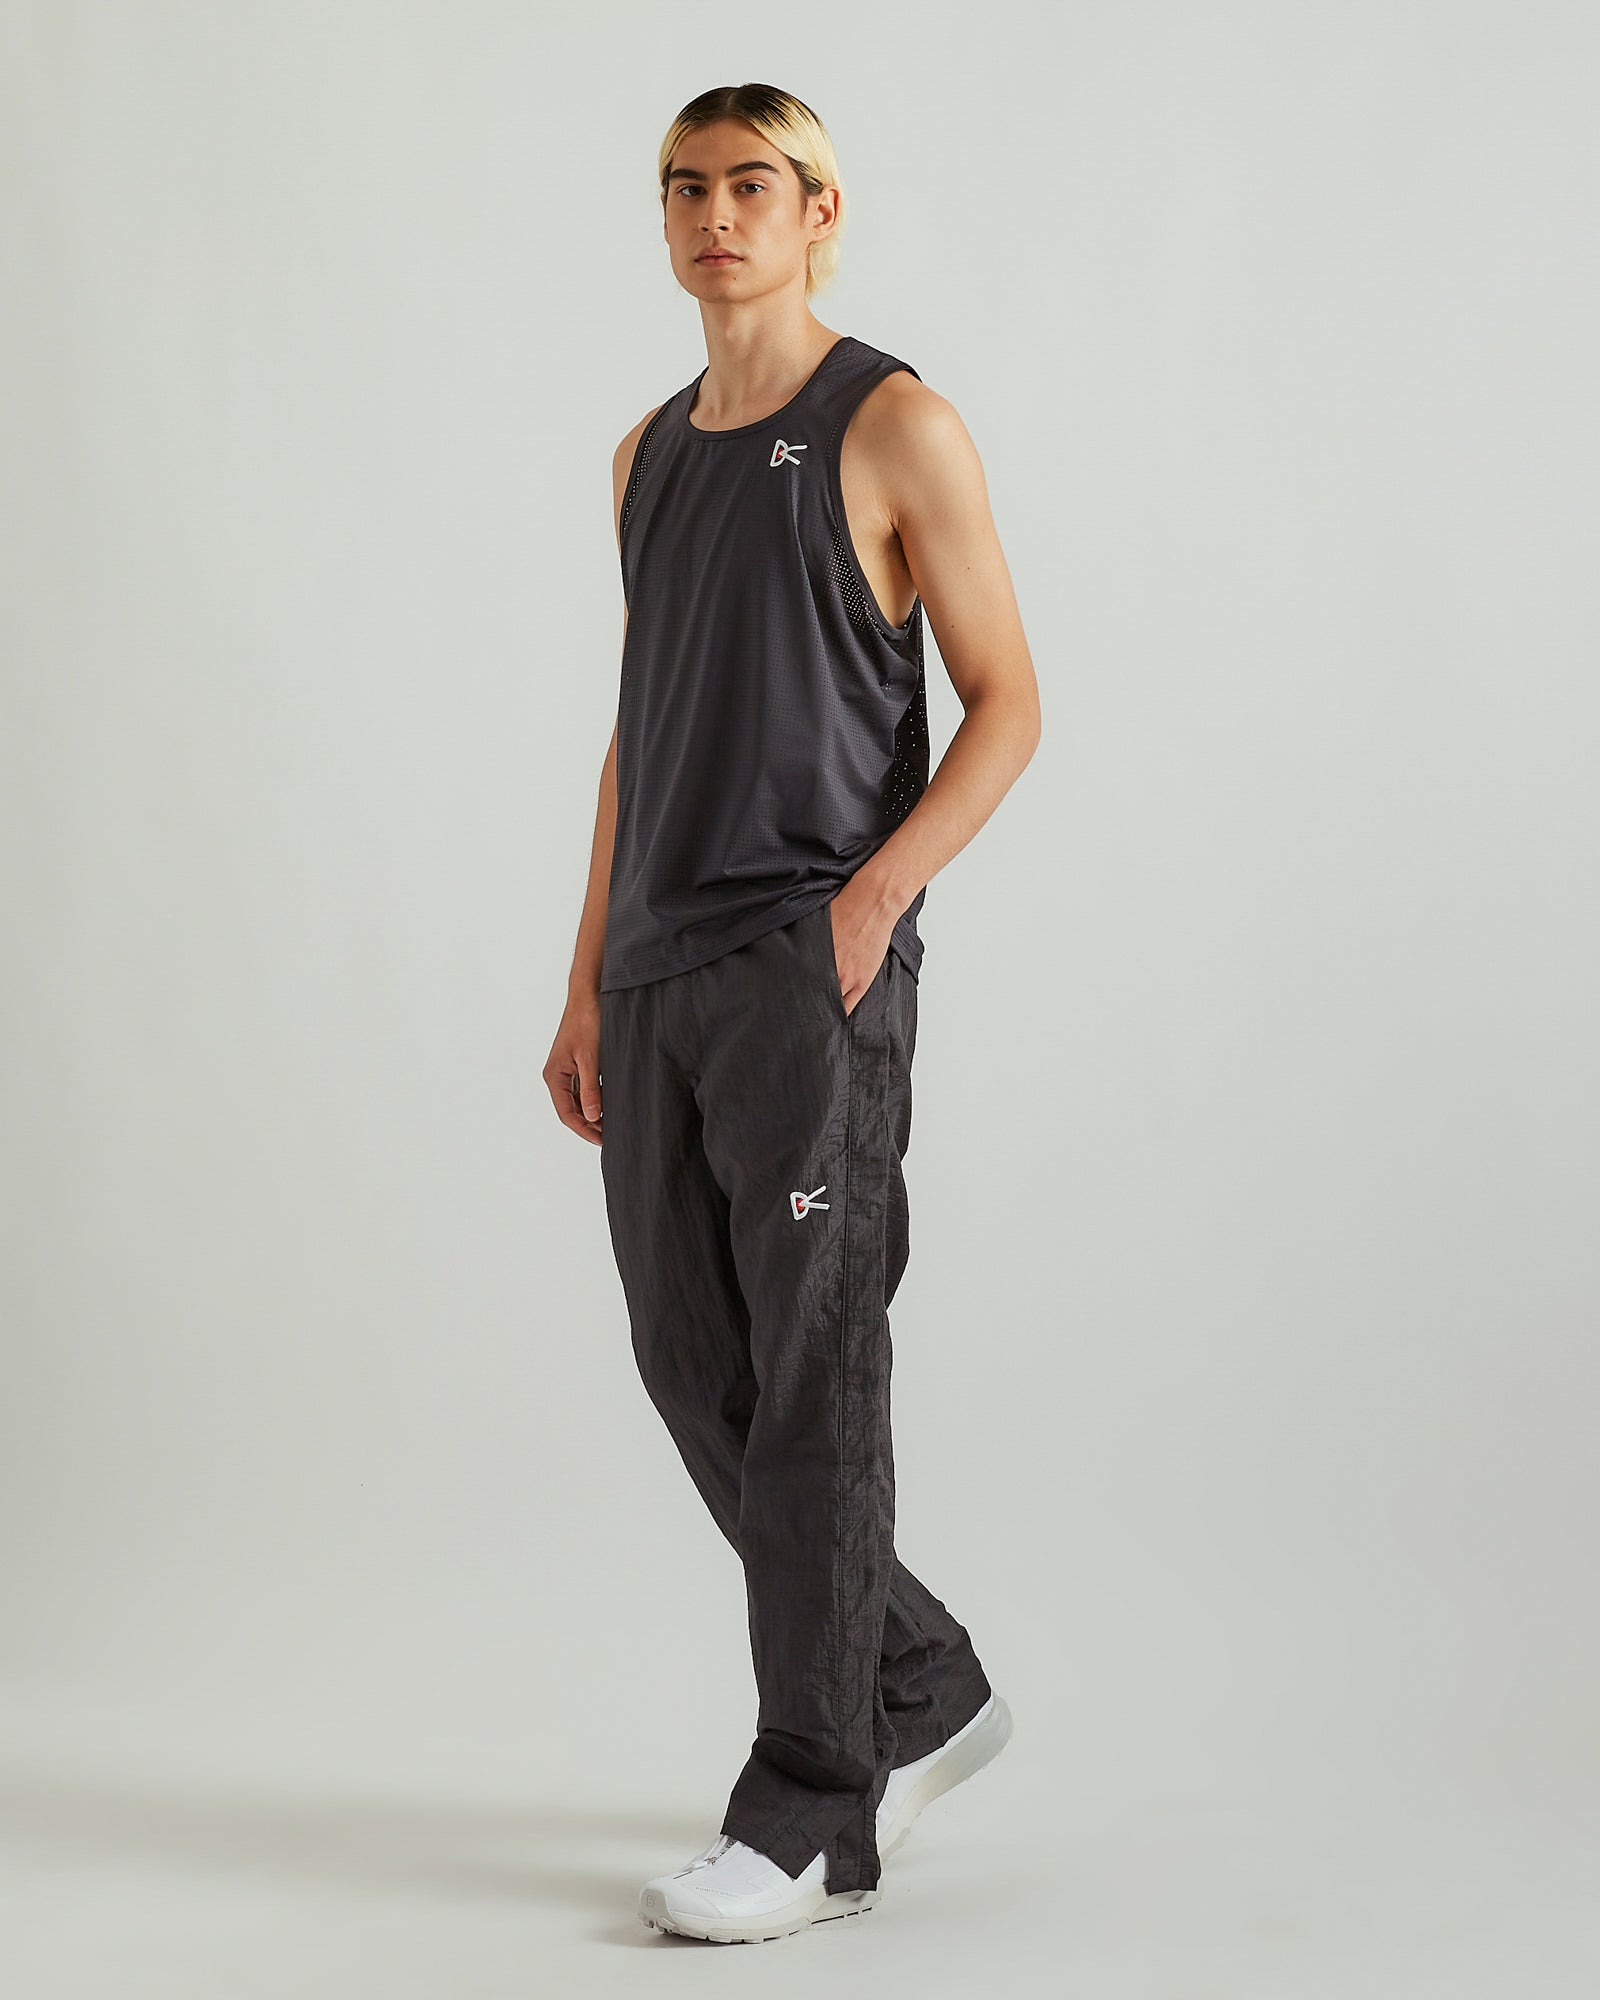 Peace-Tech Singlet in Black